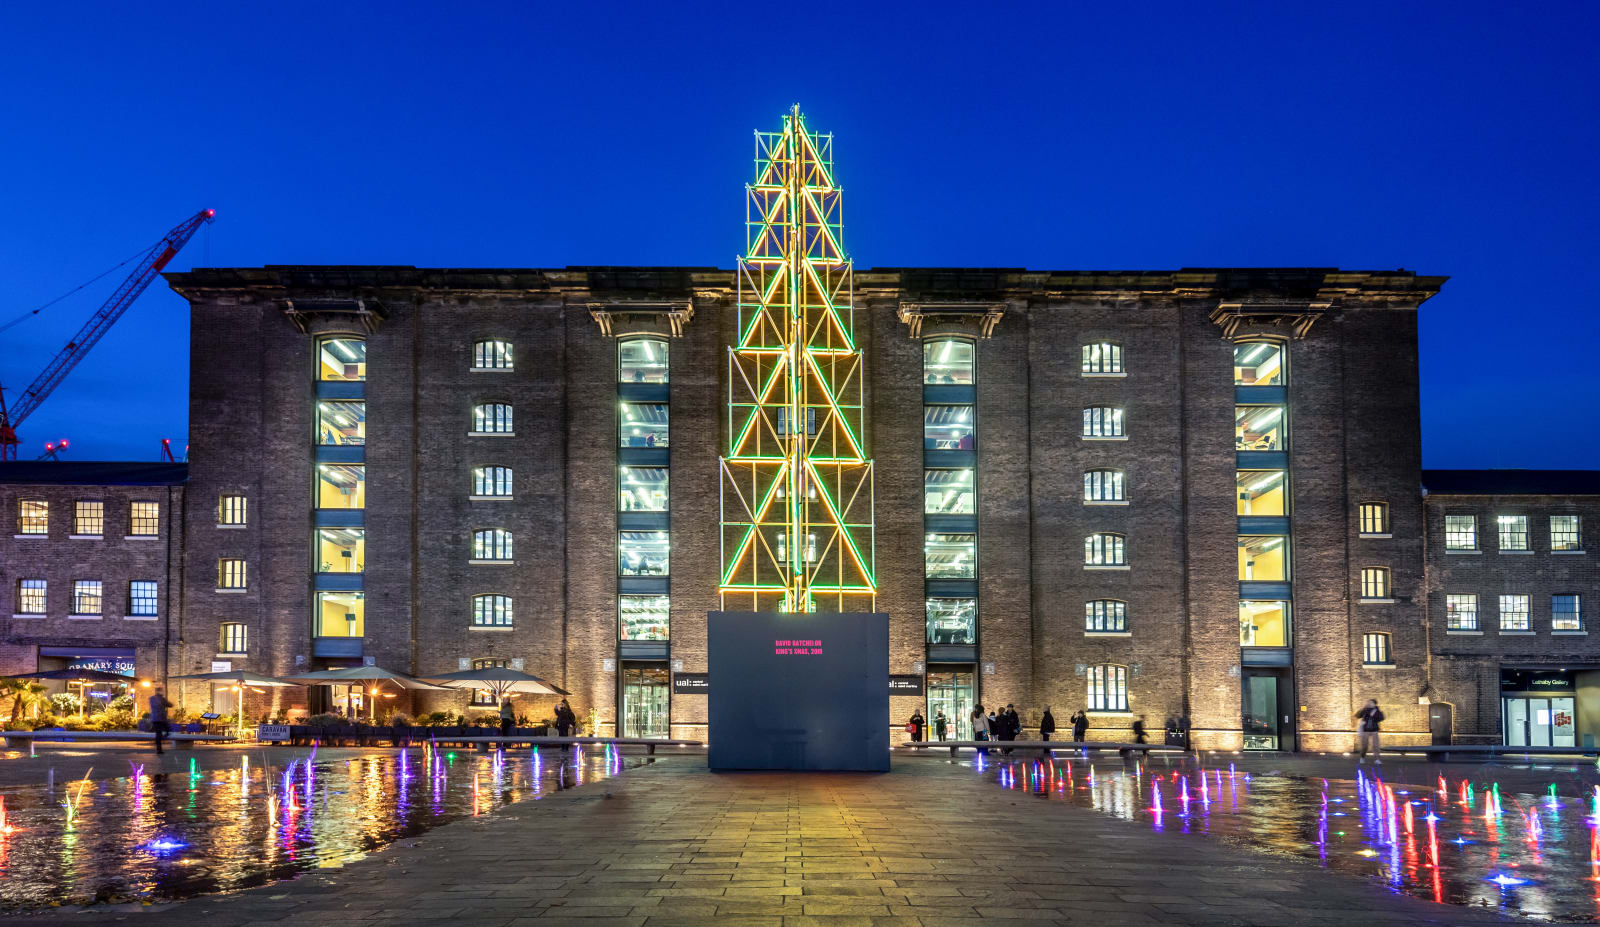 Originally commissioned for King's Cross Central by King's Cross Central Limited Partnership and Rebecca Heald. Photo: John Sturrock.